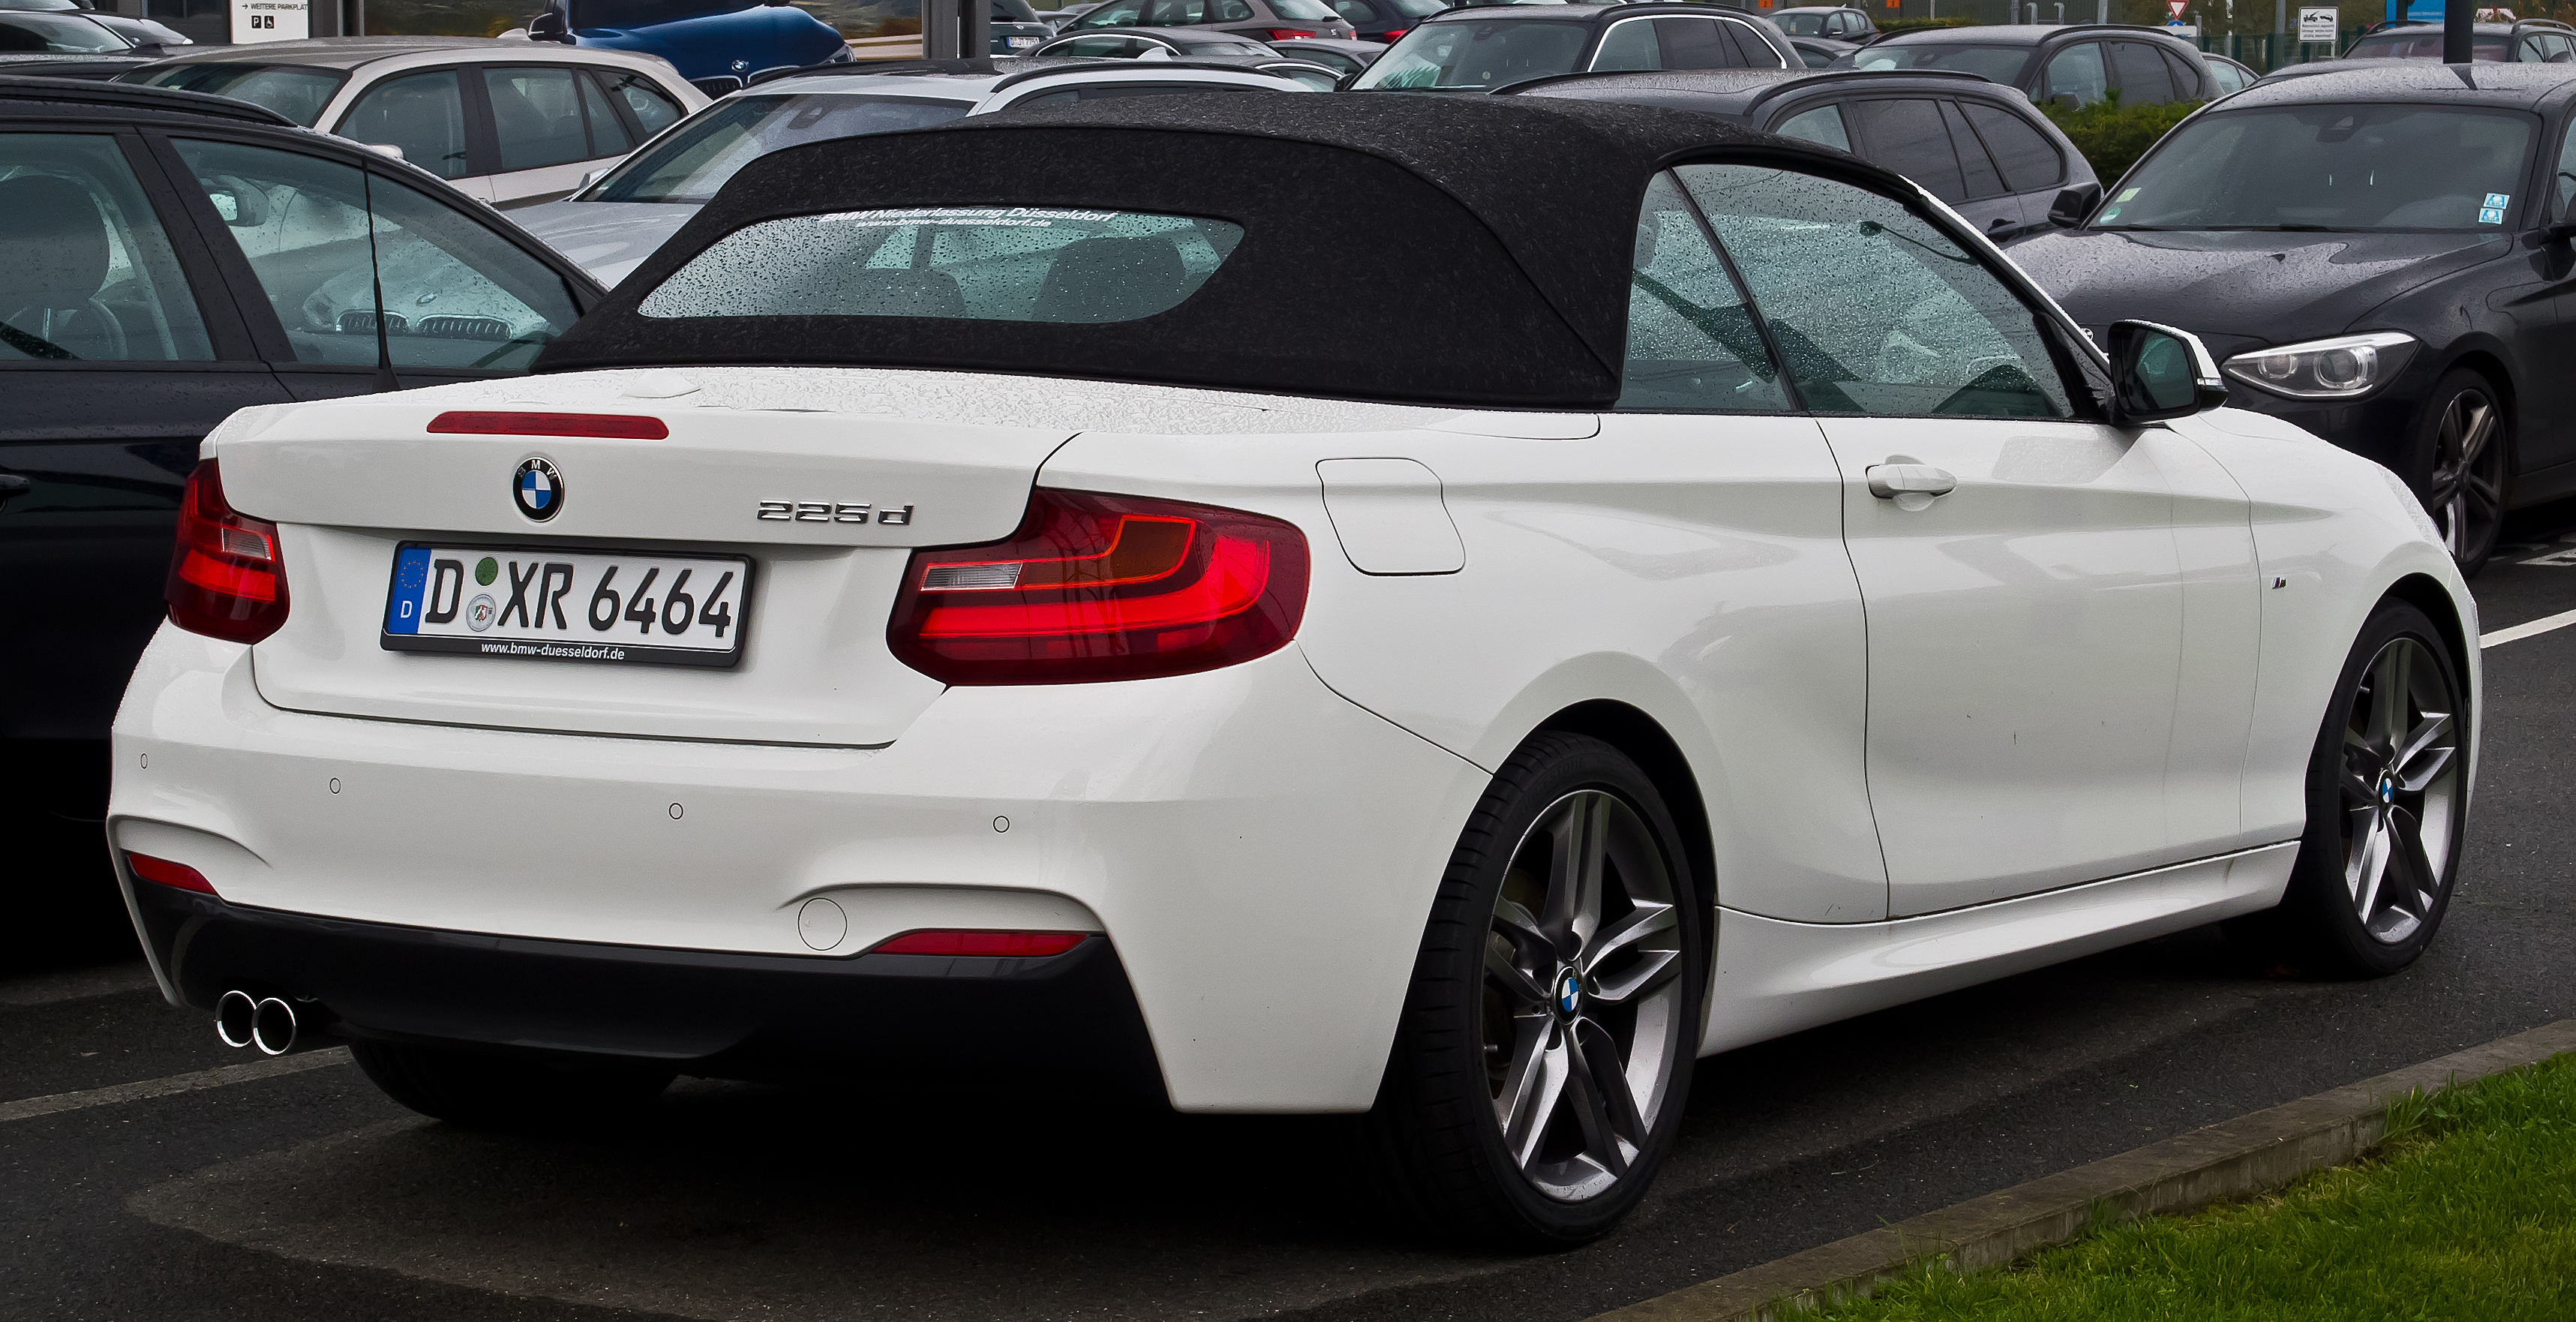 file bmw 225d cabriolet m sport f23 heckansicht 18 oktober 2015 d. Black Bedroom Furniture Sets. Home Design Ideas